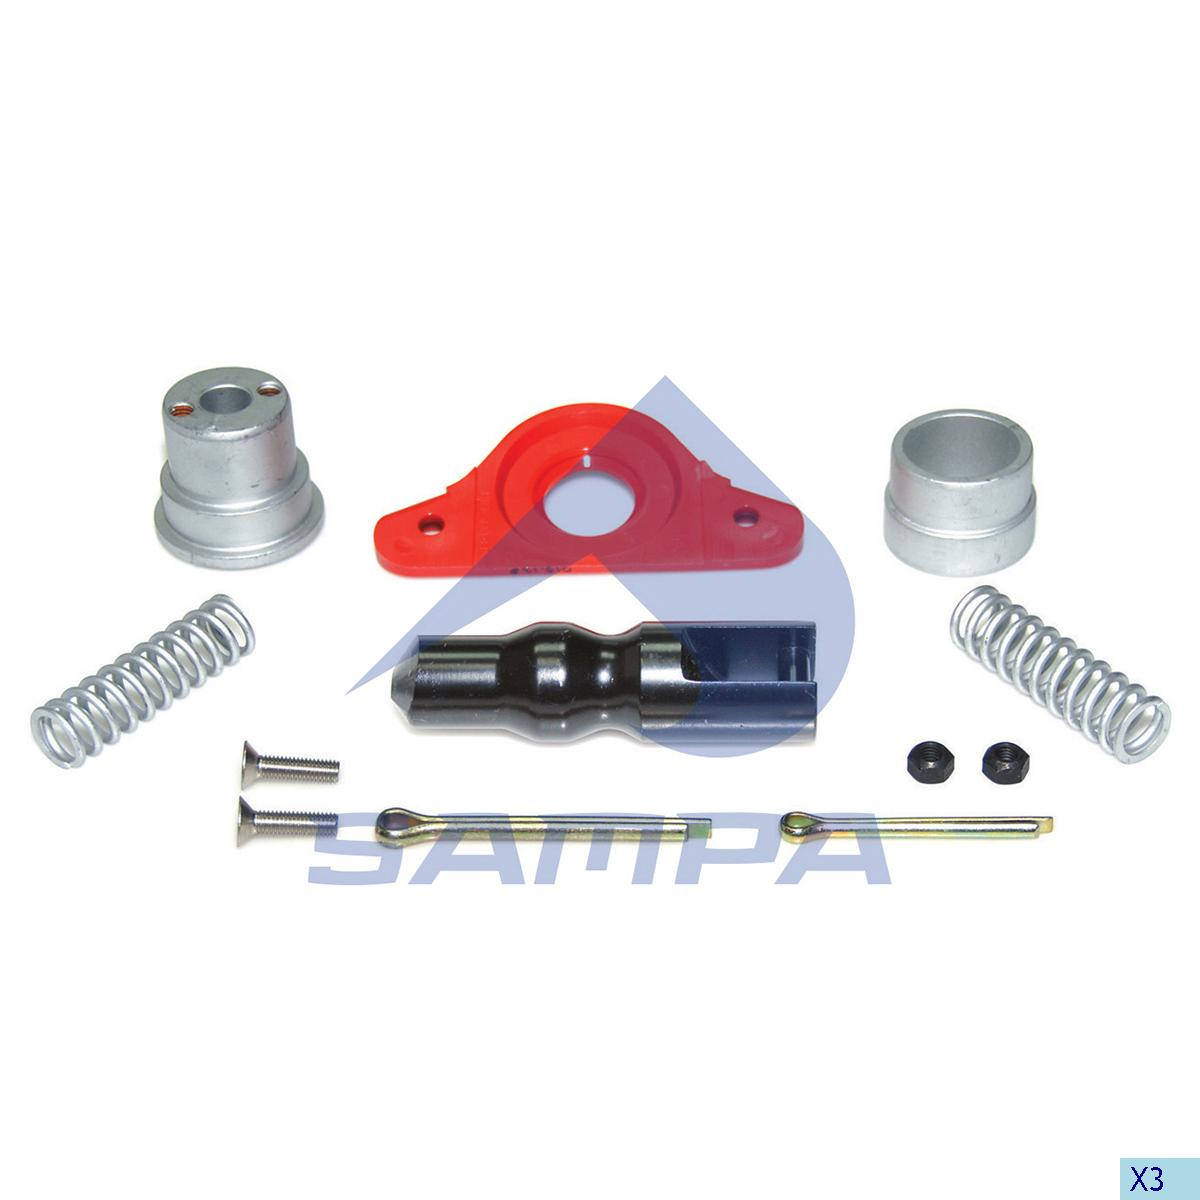 Repair Kit, Trailer Coupling, Complementary Equipment